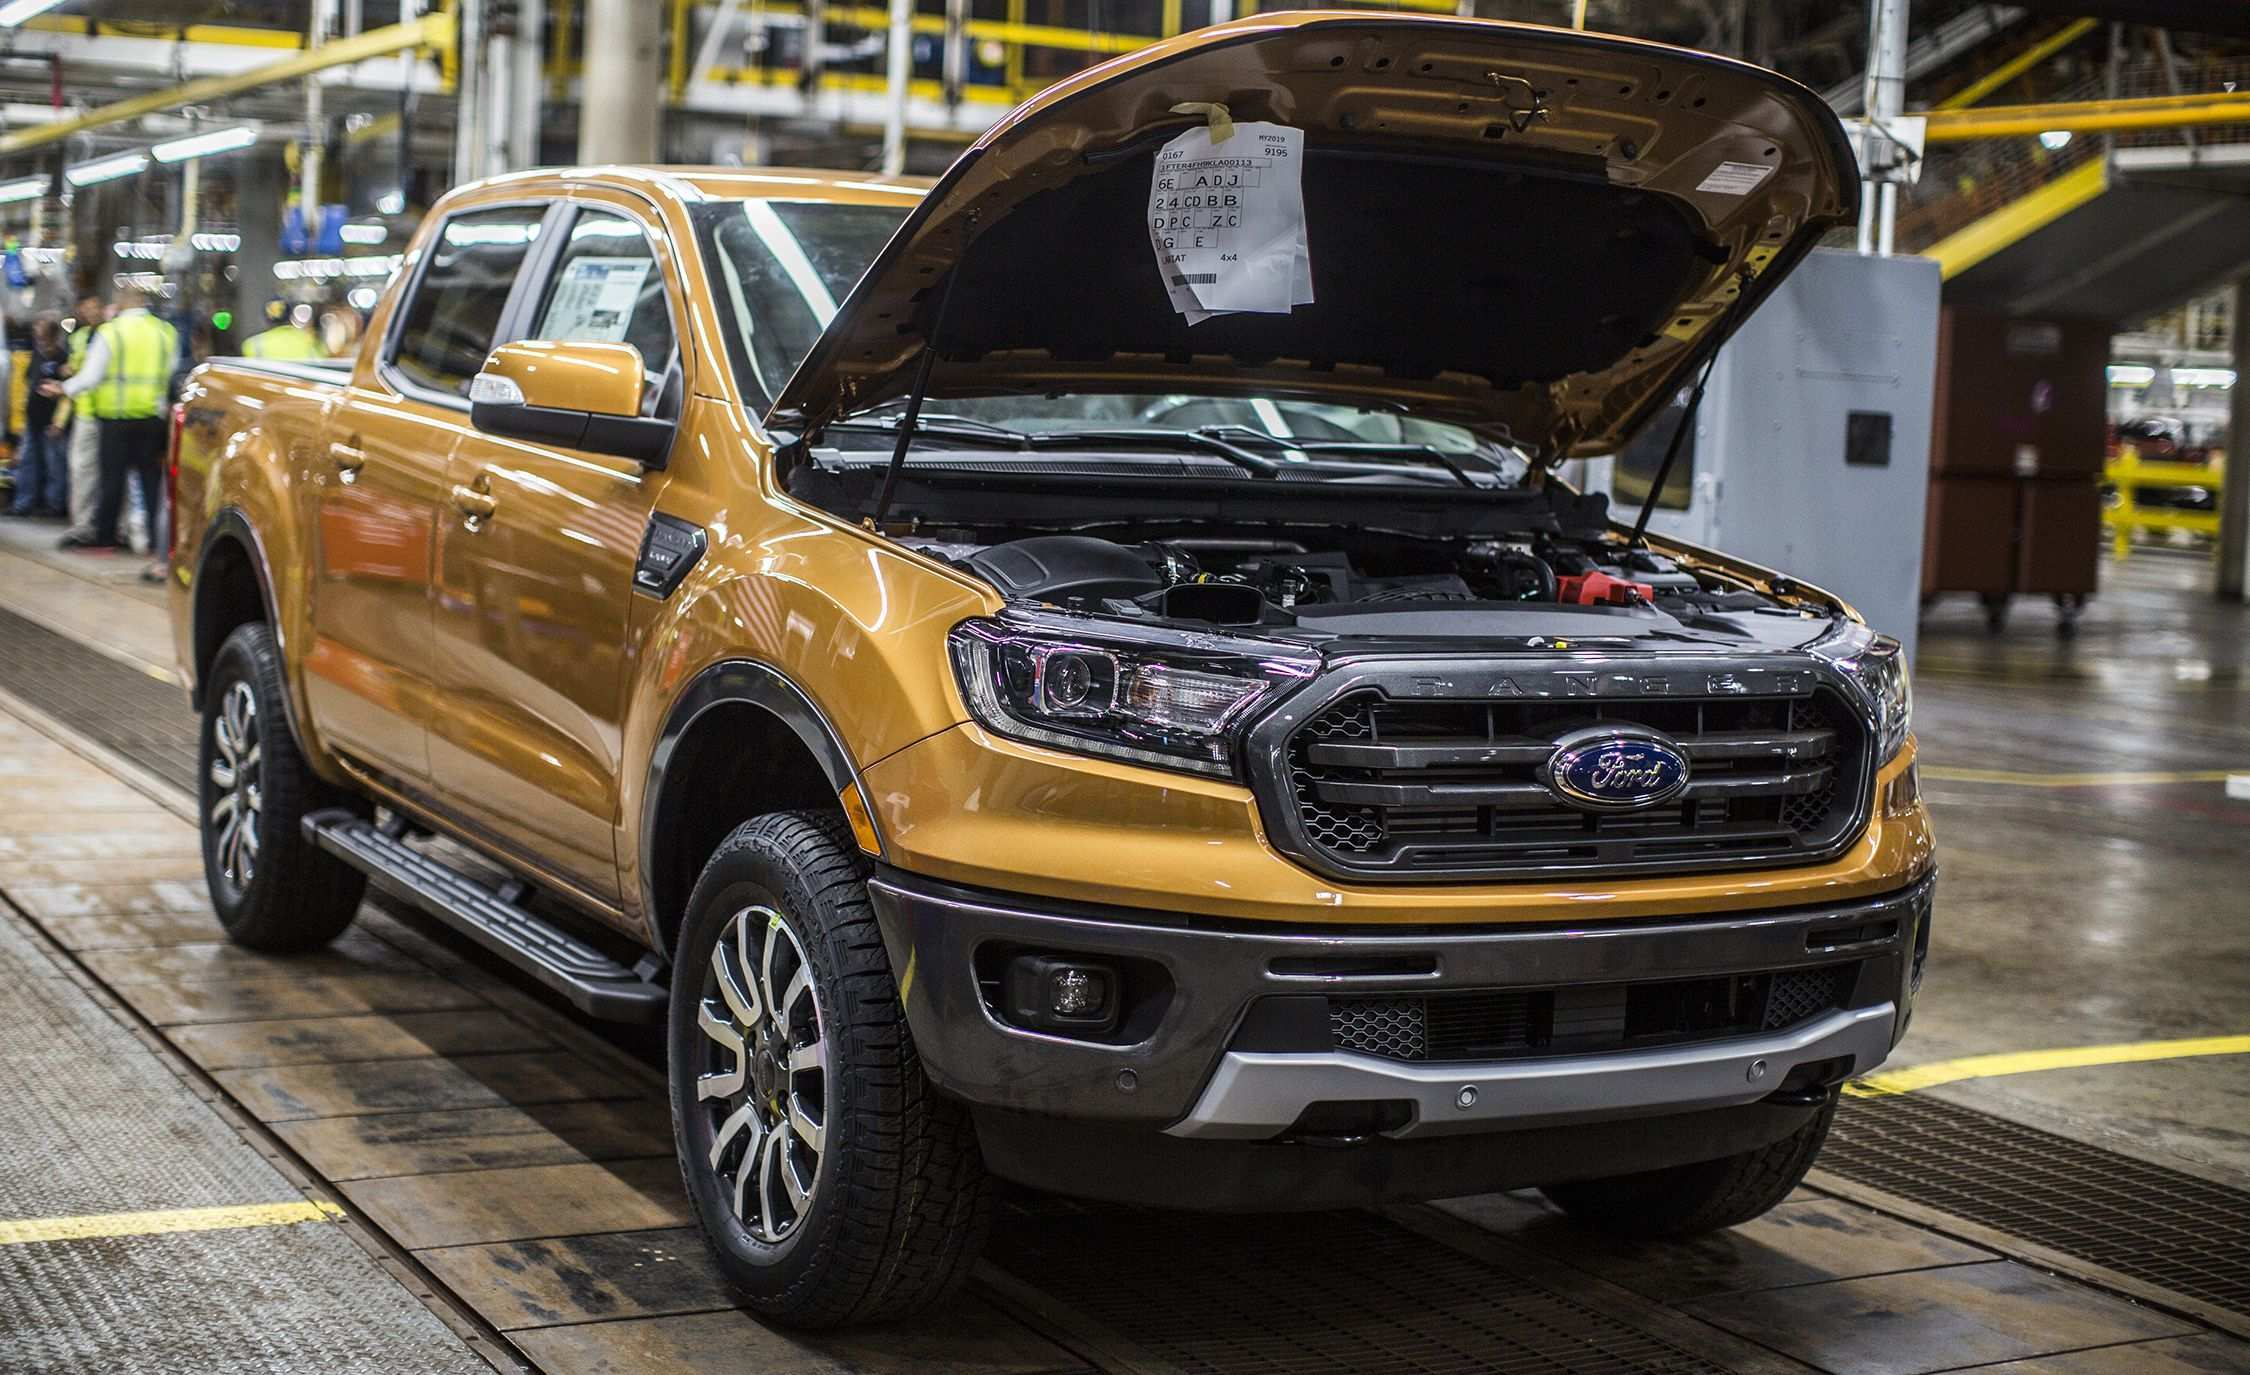 48 Gallery of The Is The 2019 Ford Ranger Out Yet Review And Price Interior for The Is The 2019 Ford Ranger Out Yet Review And Price